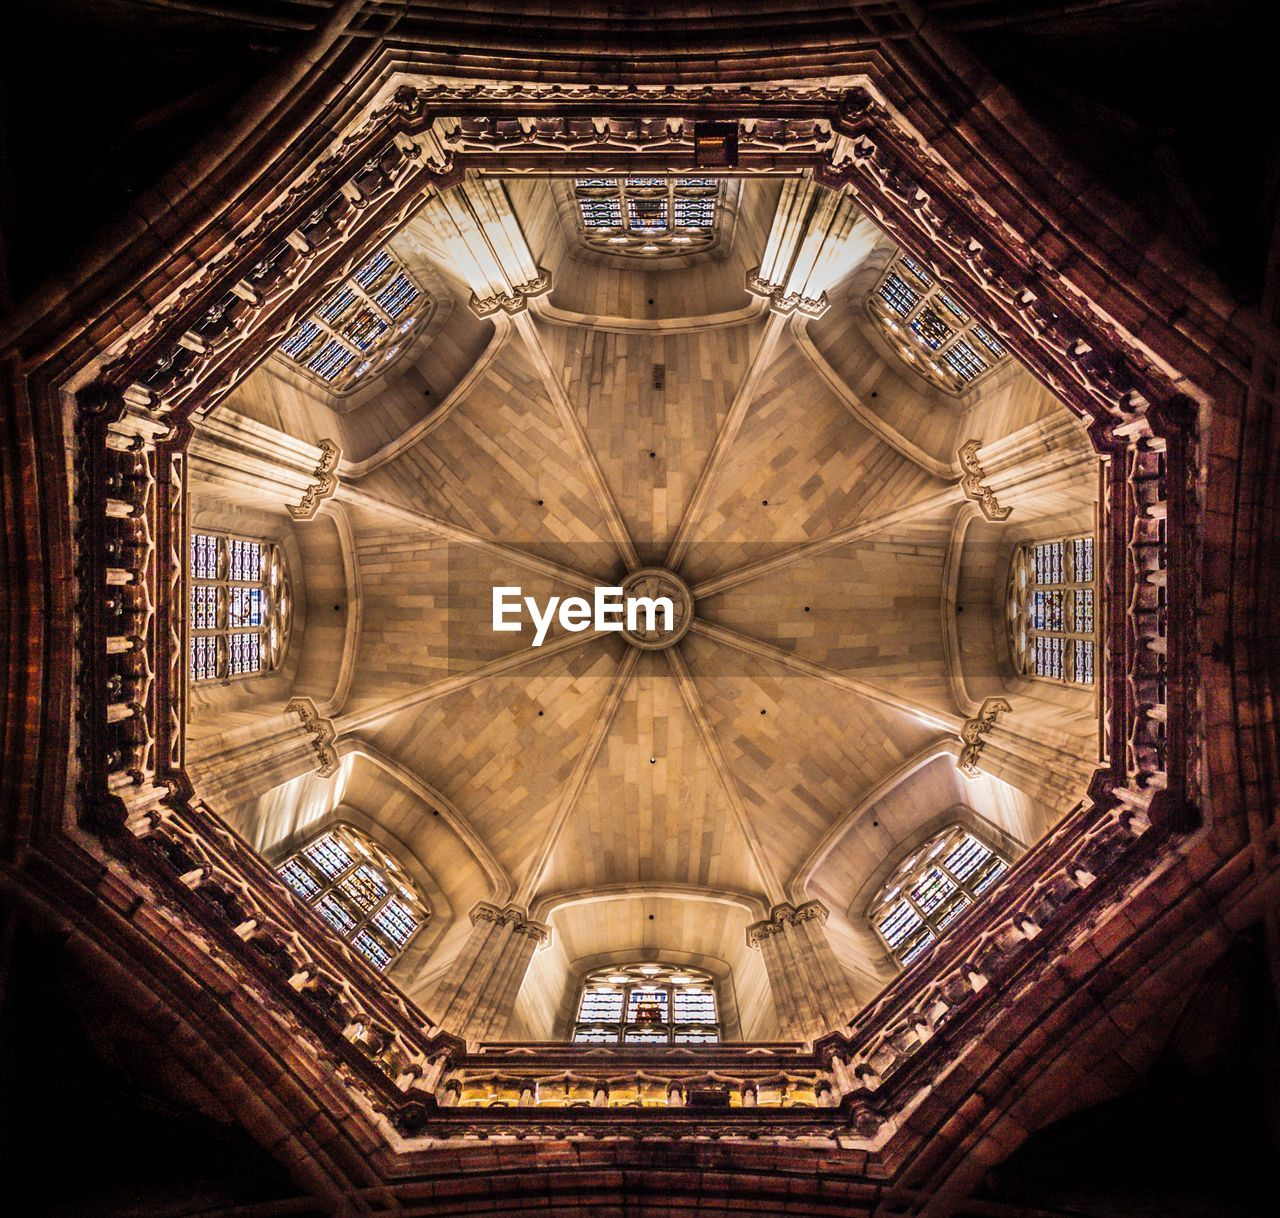 architecture, ceiling, indoors, belief, built structure, religion, place of worship, spirituality, low angle view, directly below, no people, building, travel destinations, pattern, design, ornate, geometric shape, architecture and art, glass, cupola, gothic style, architectural column